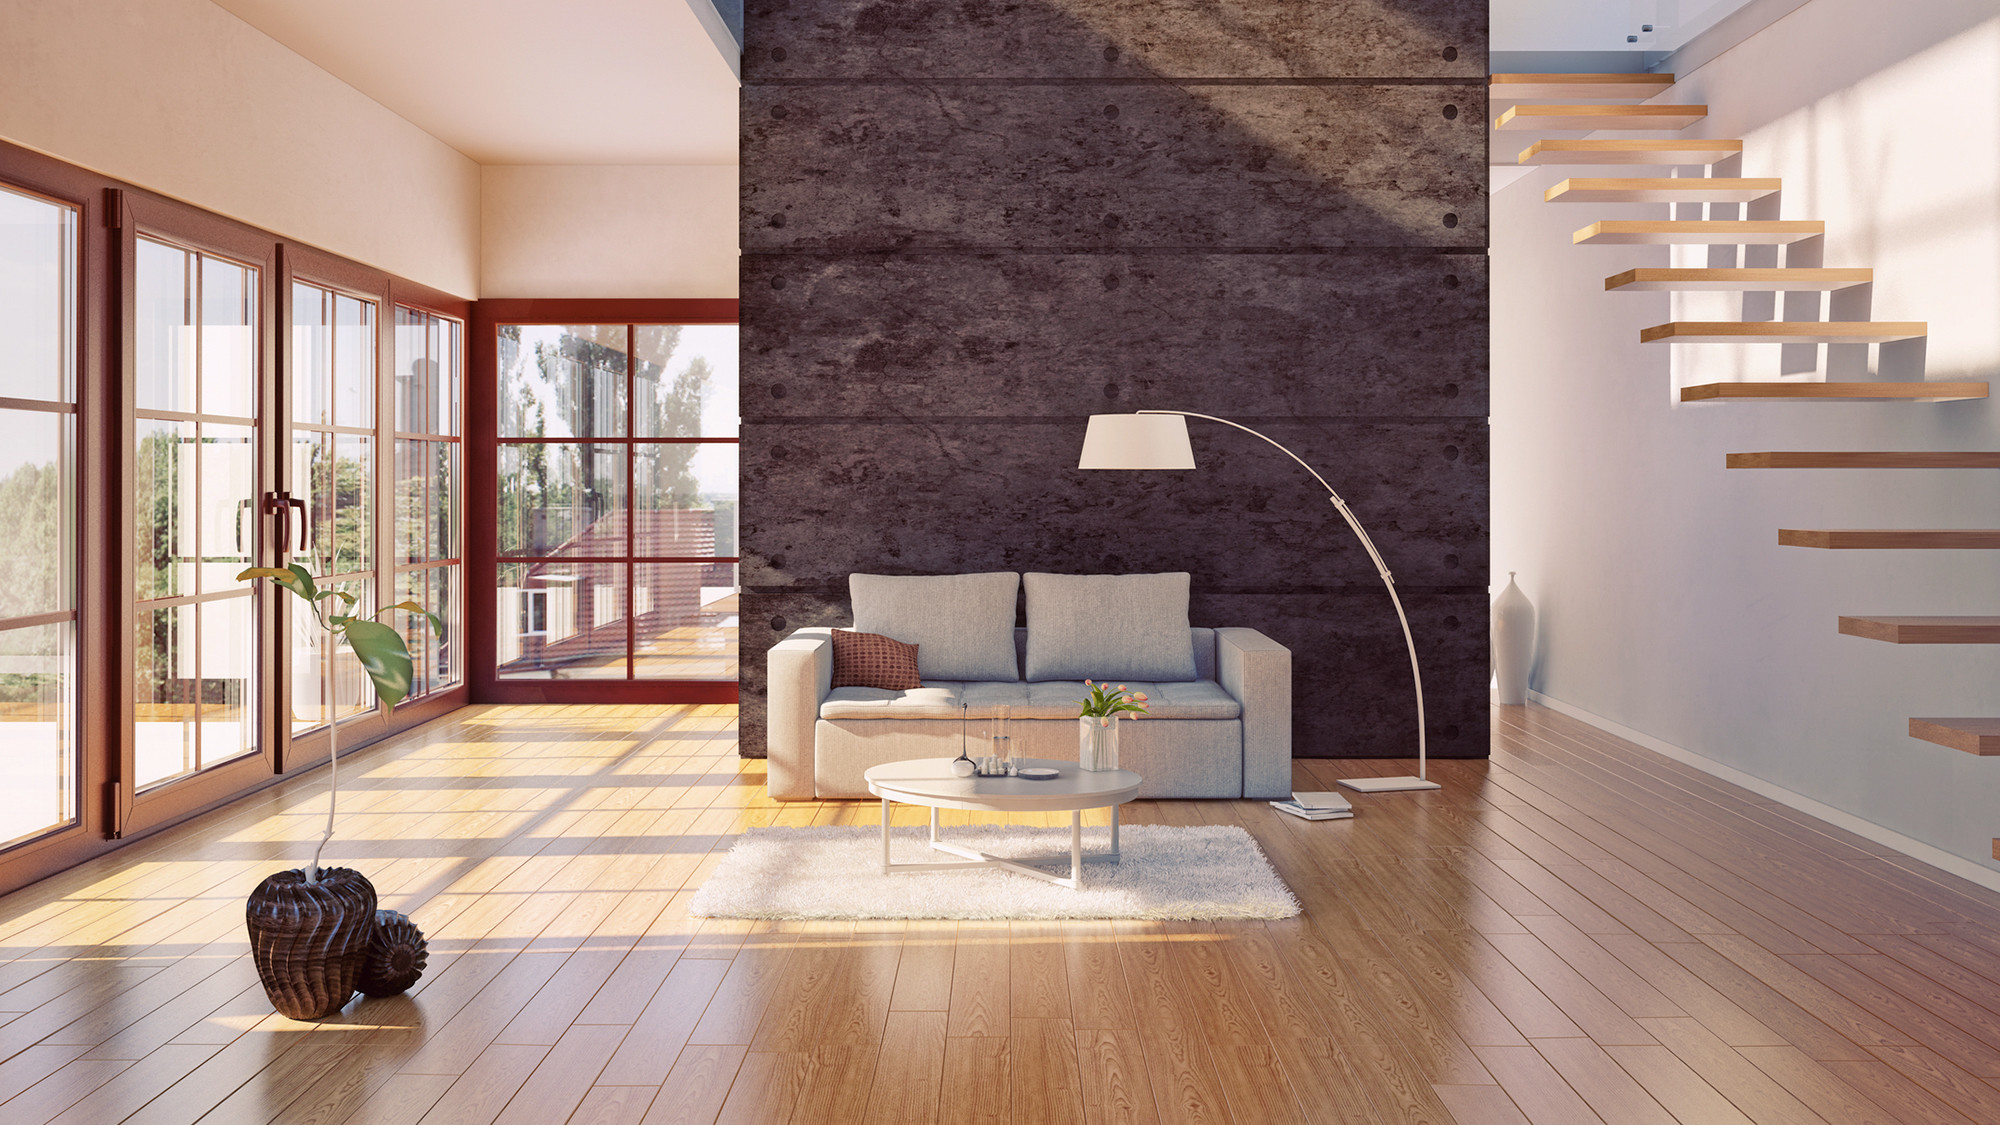 hardwood floor care and cleaning of do hardwood floors provide the best return on investment realtor coma with regard to hardwood floors investment